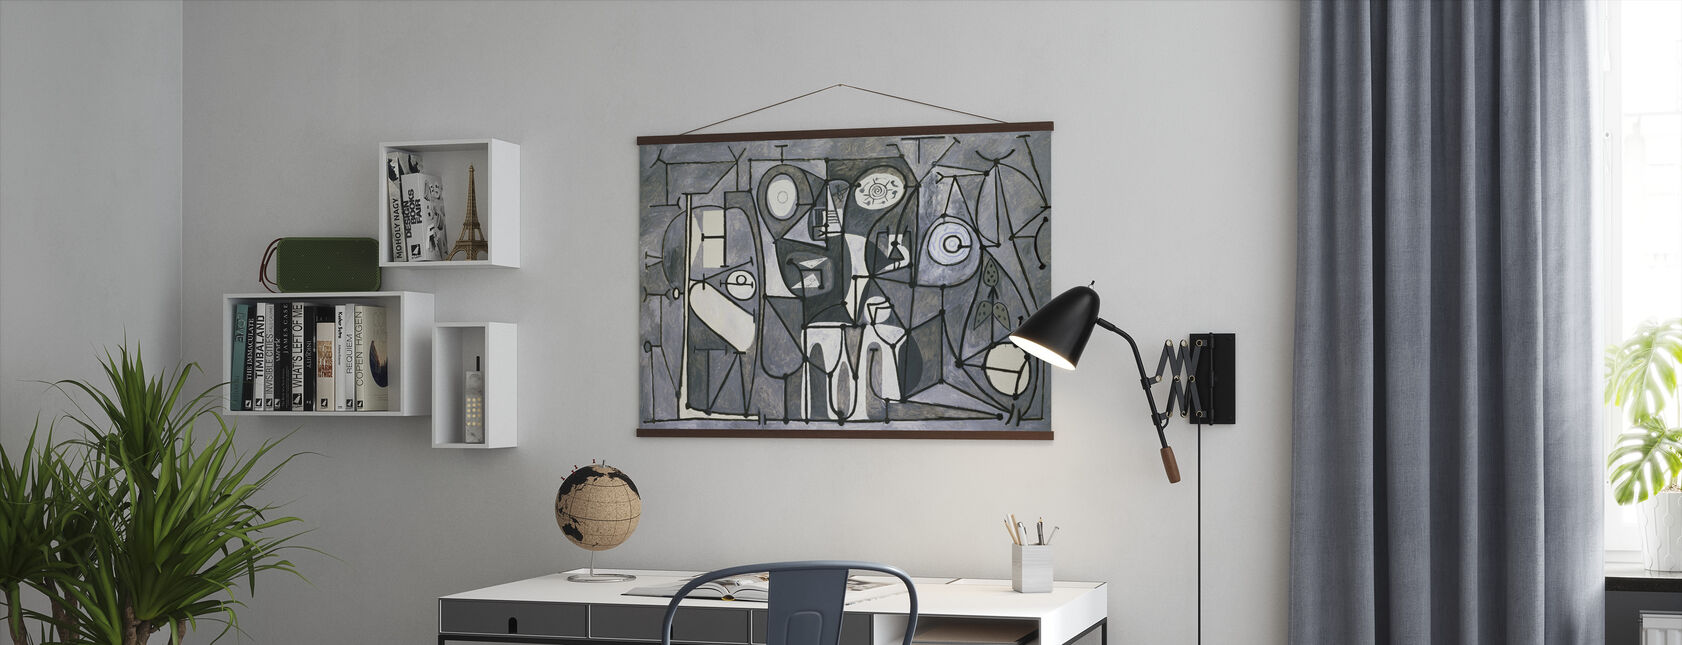 Kitchen - Pablo Picasso - Poster - Office